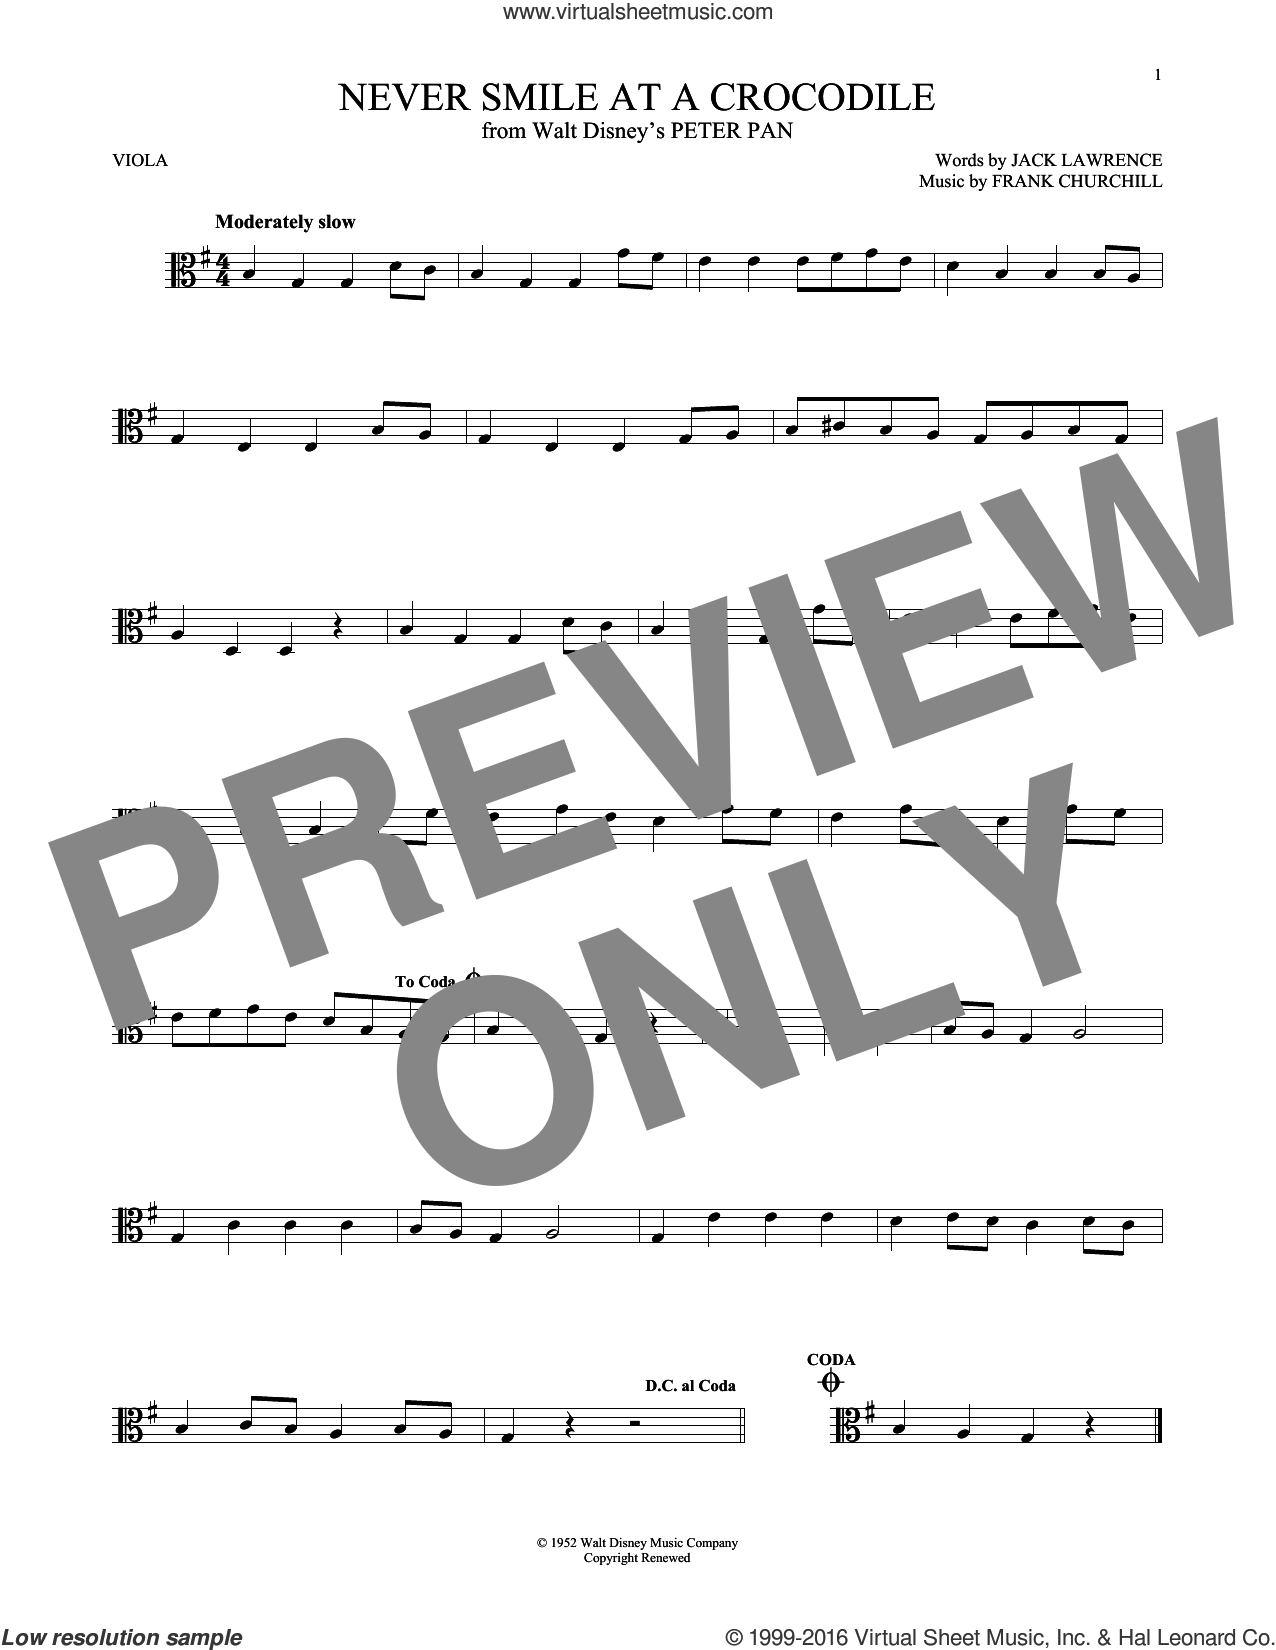 Never Smile At A Crocodile sheet music for viola solo by Jack Lawrence and Frank Churchill, intermediate